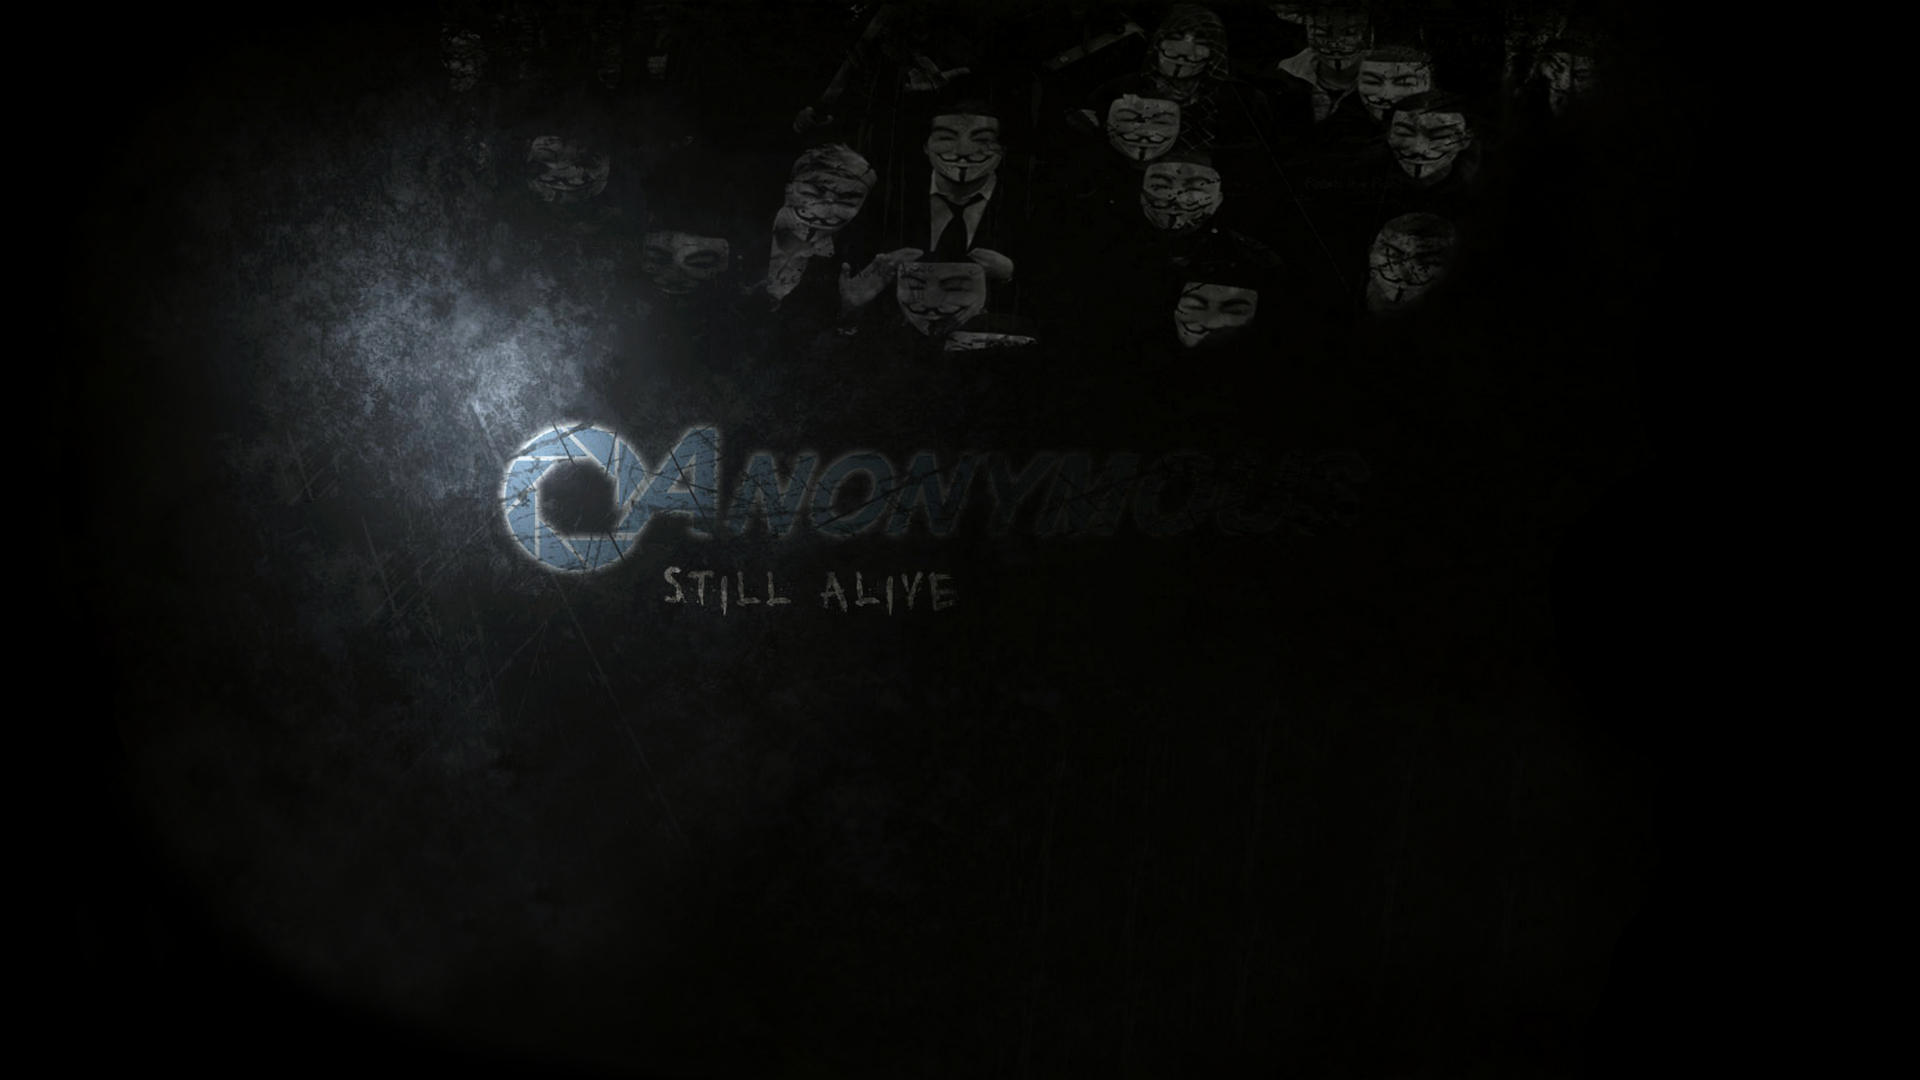 Anonymous wallpaper pack by quadraro on deviantart